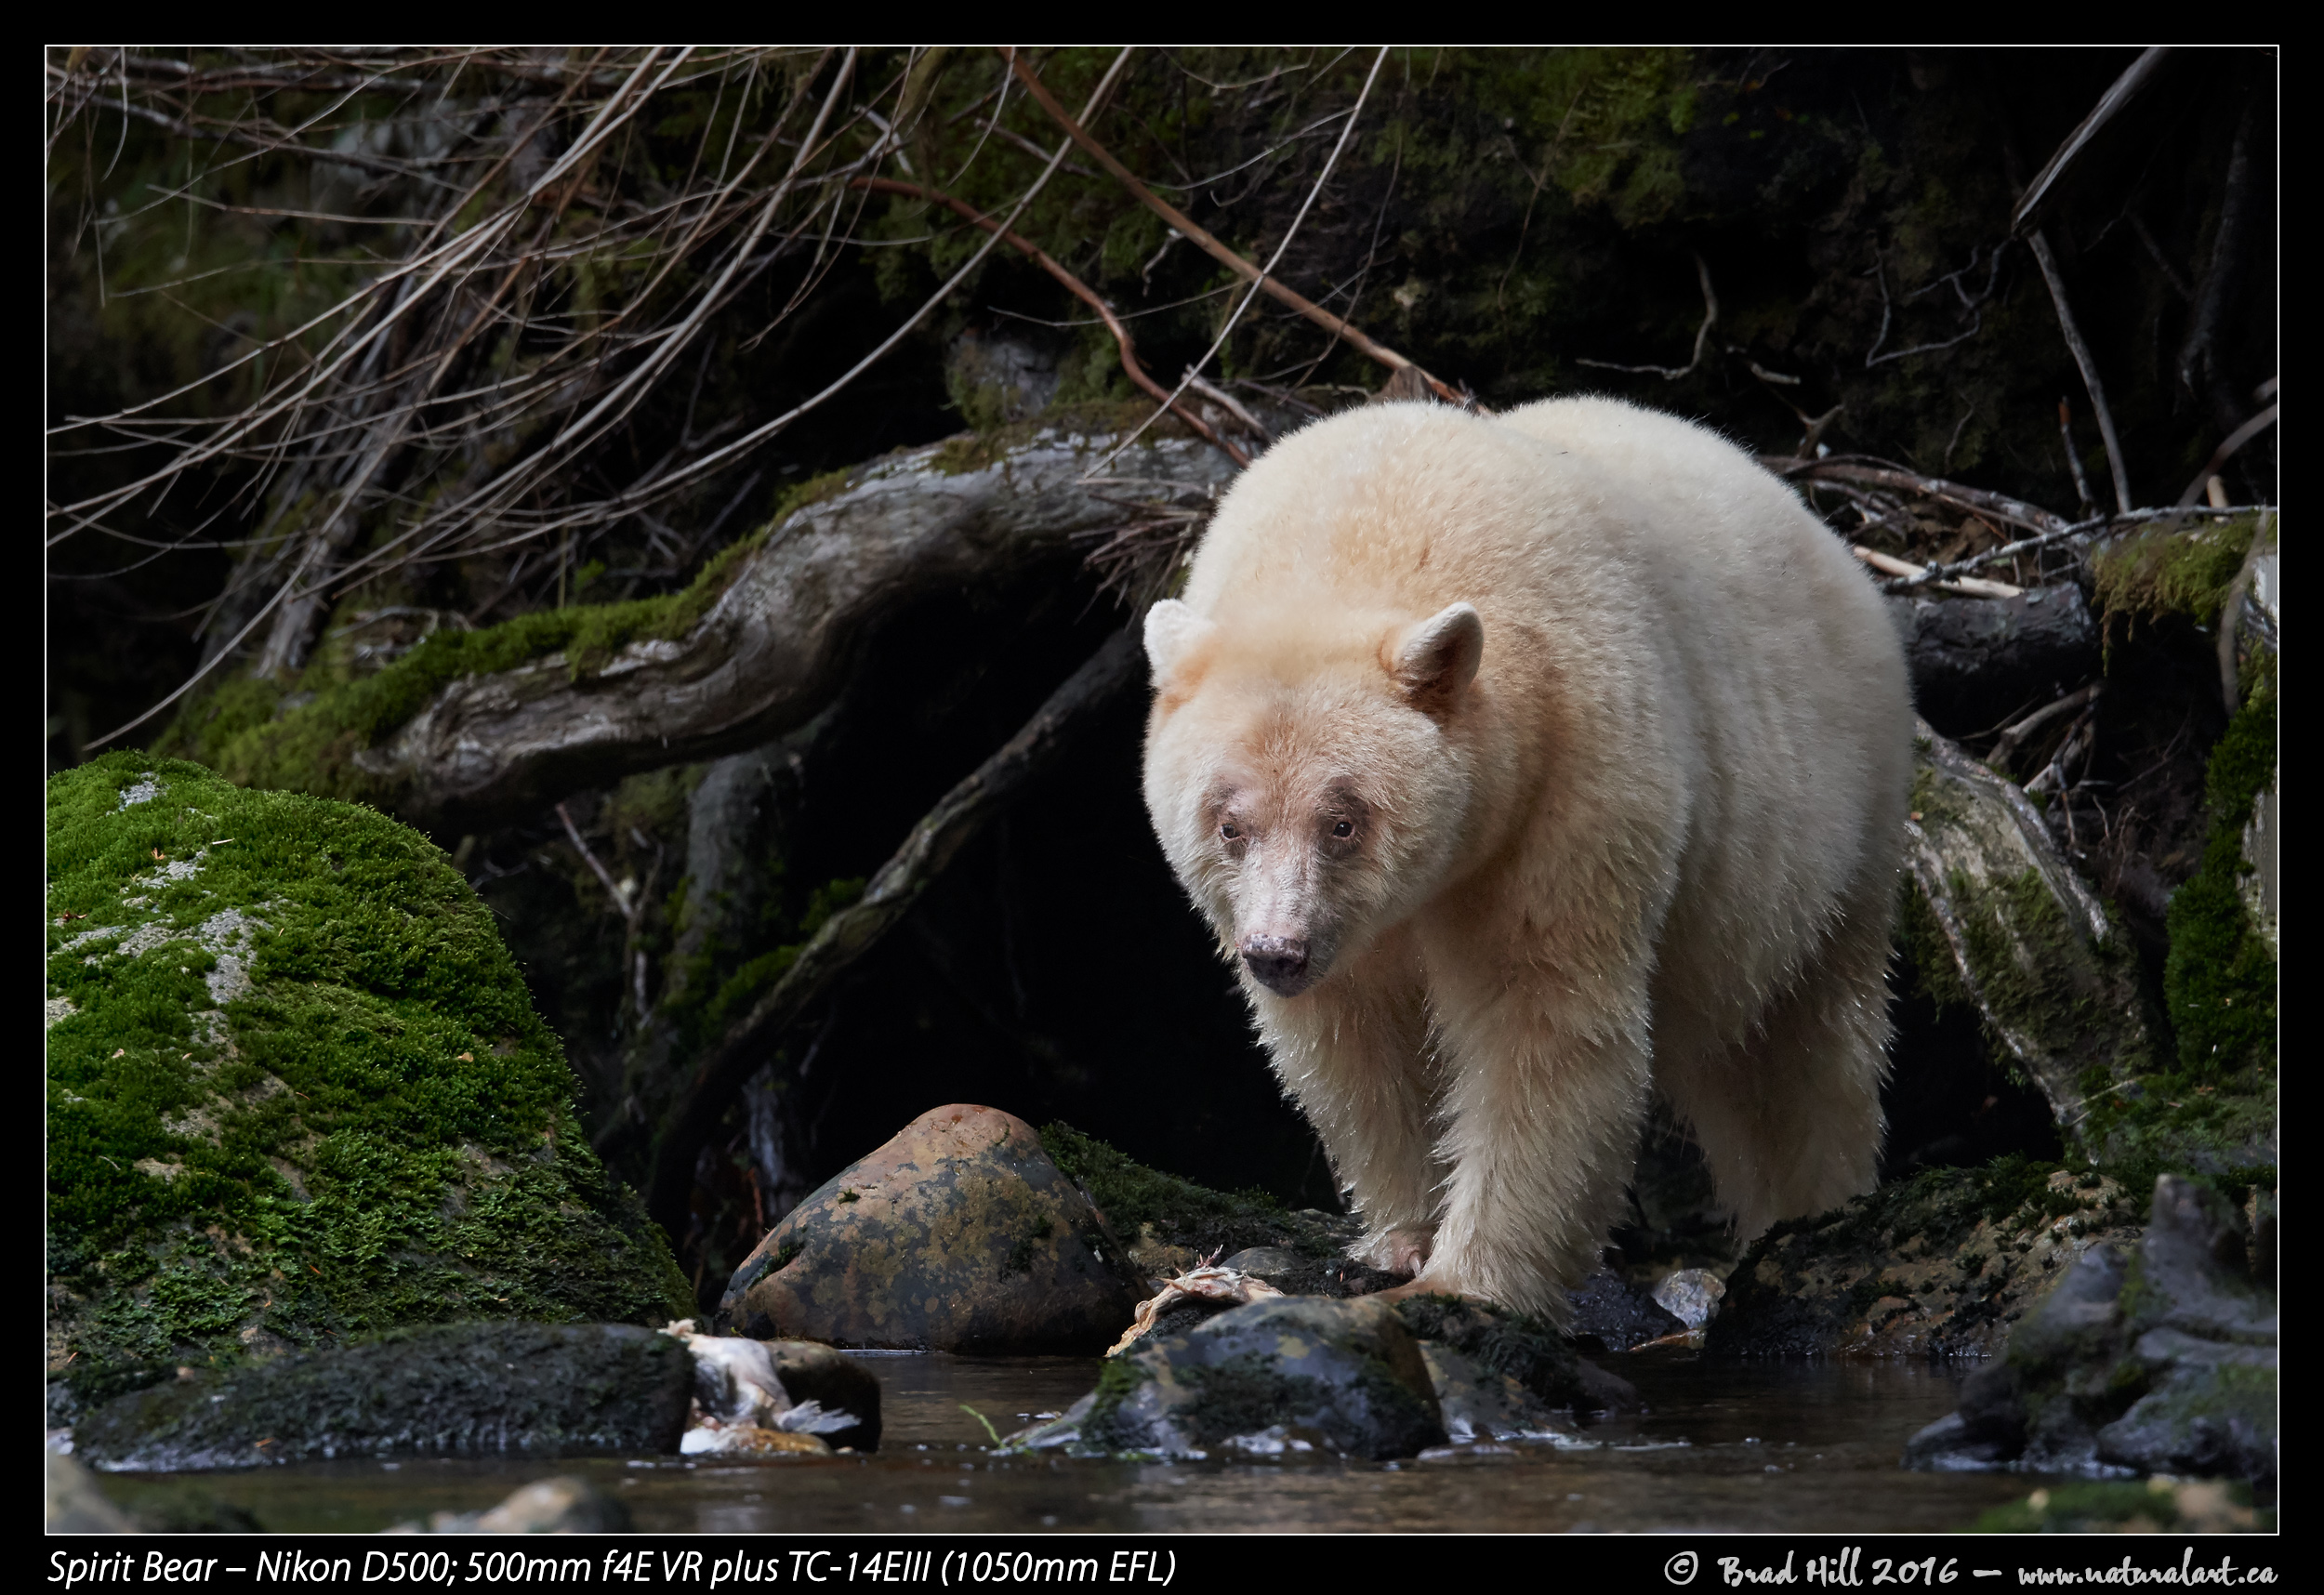 Spirit Bear With D500 1050mm EFL Download 2400 Pixel Image